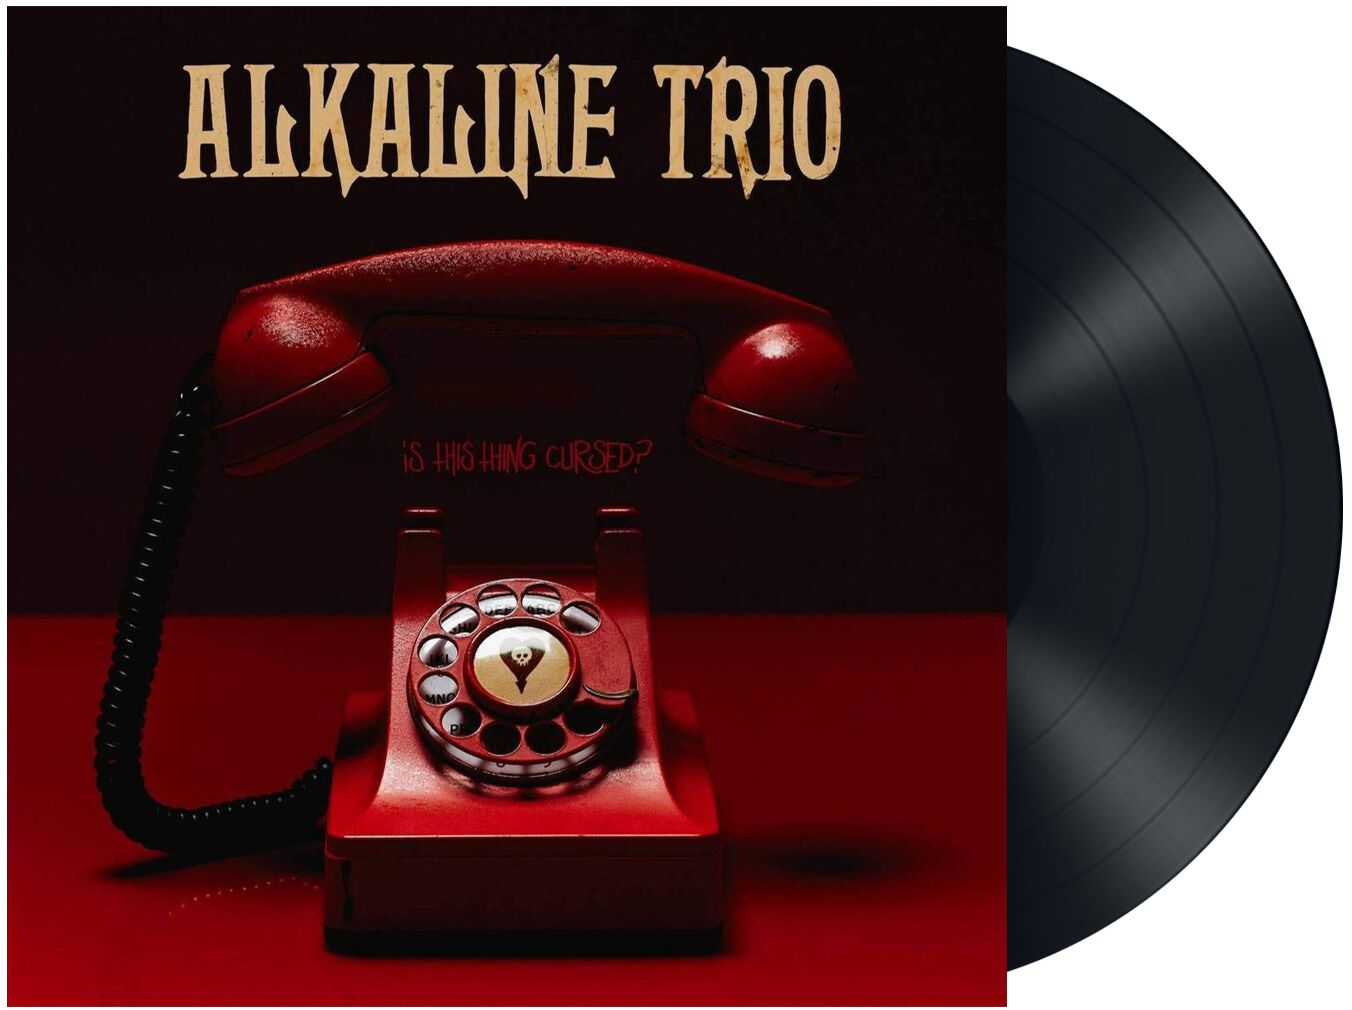 Alkaline Trio Is this thing cursed? LP Standard